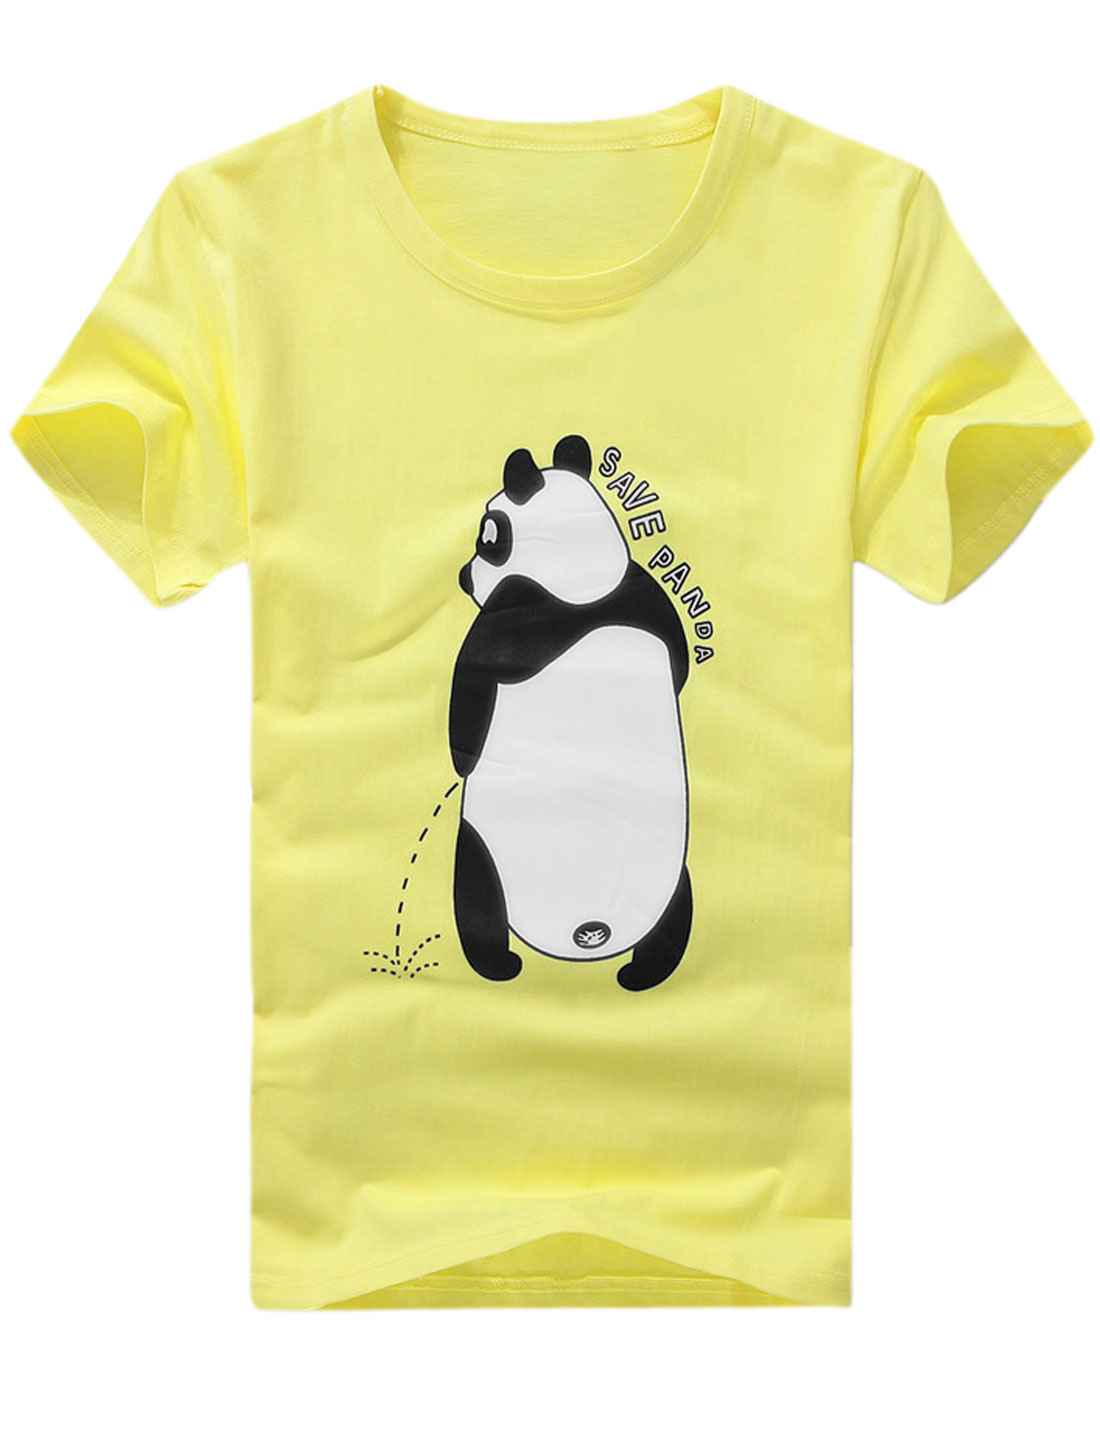 Men Personalized Round Neck Panda Printed T-Shirt Light Yellow M